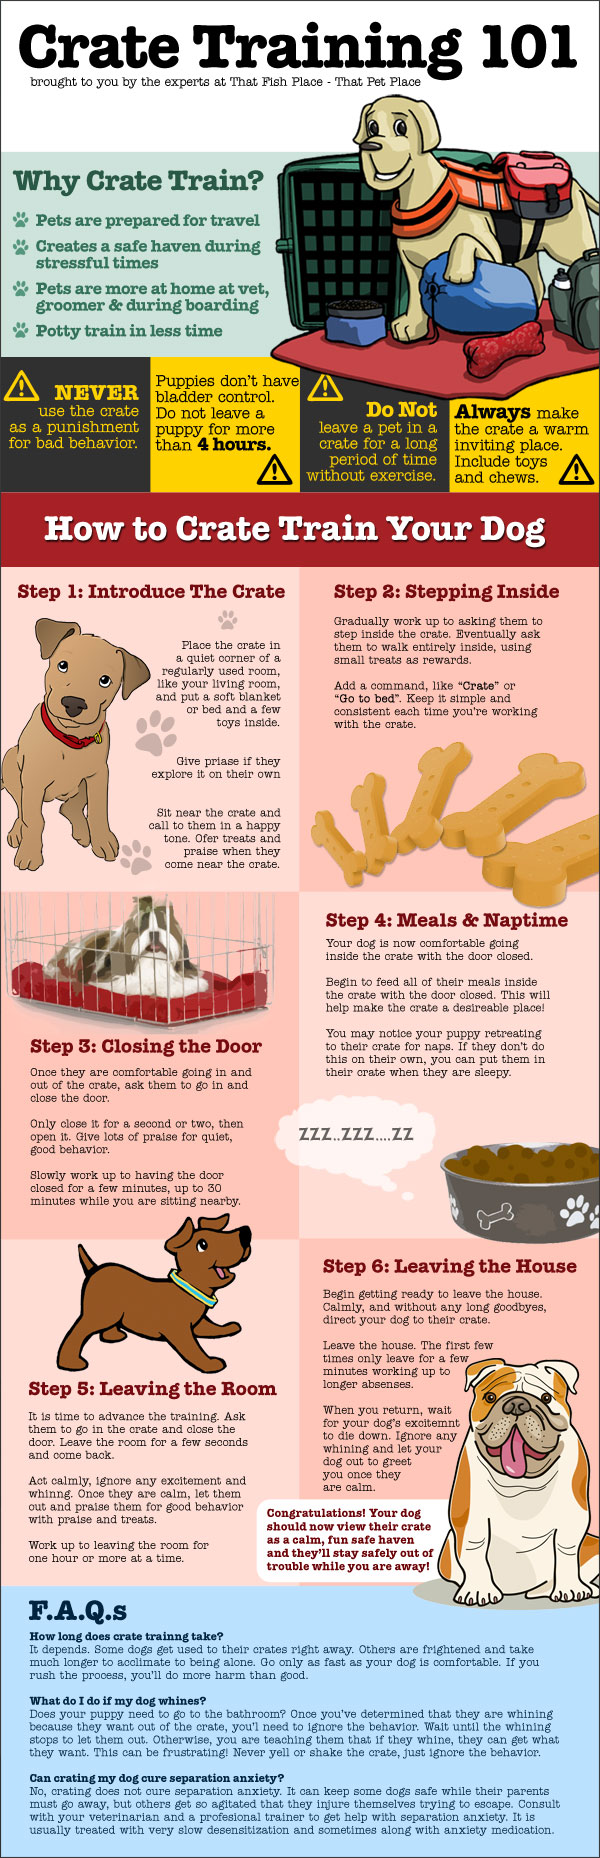 Crate Training 101 Infographic